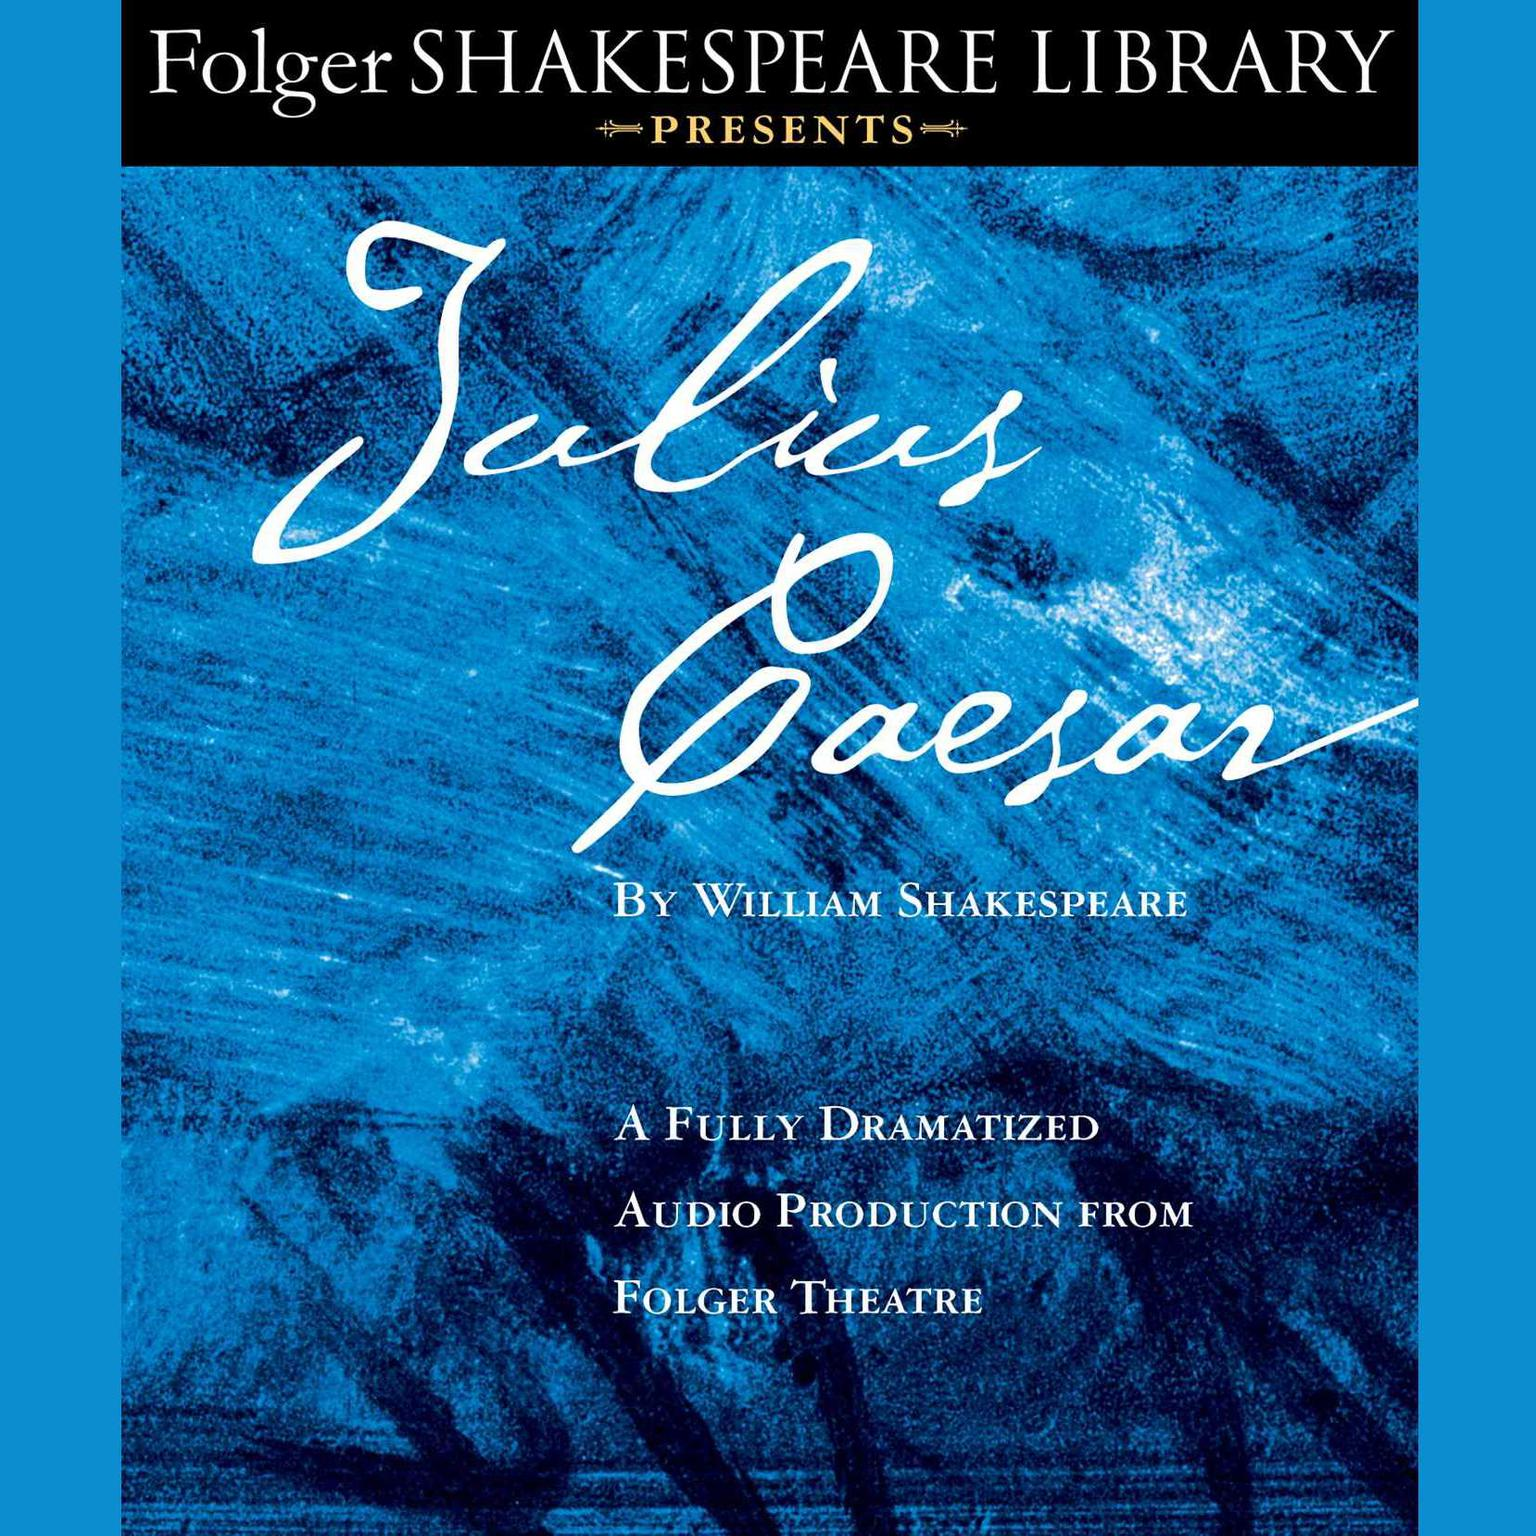 Printable Julius Caesar: A Fully-Dramatized Audio Production From Folger Theatre Audiobook Cover Art